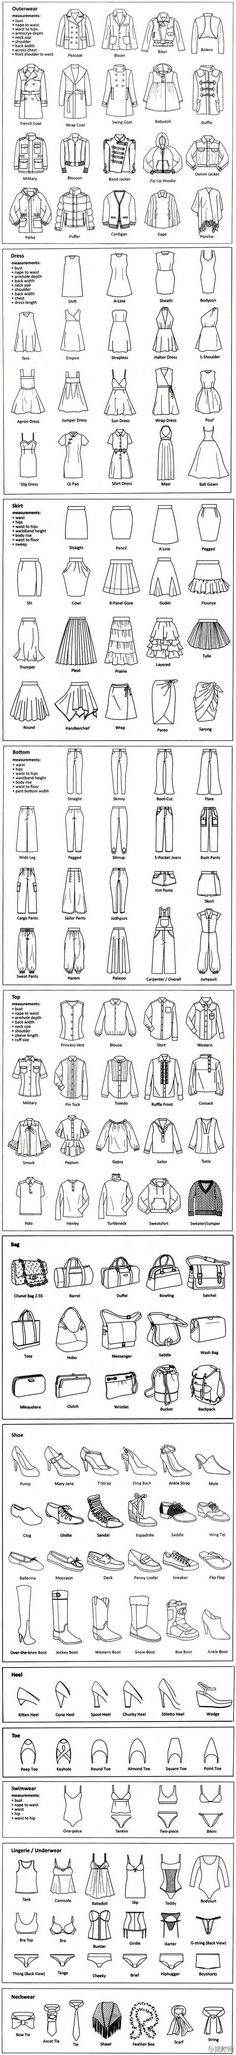 Garment fashion terminology in English - useful